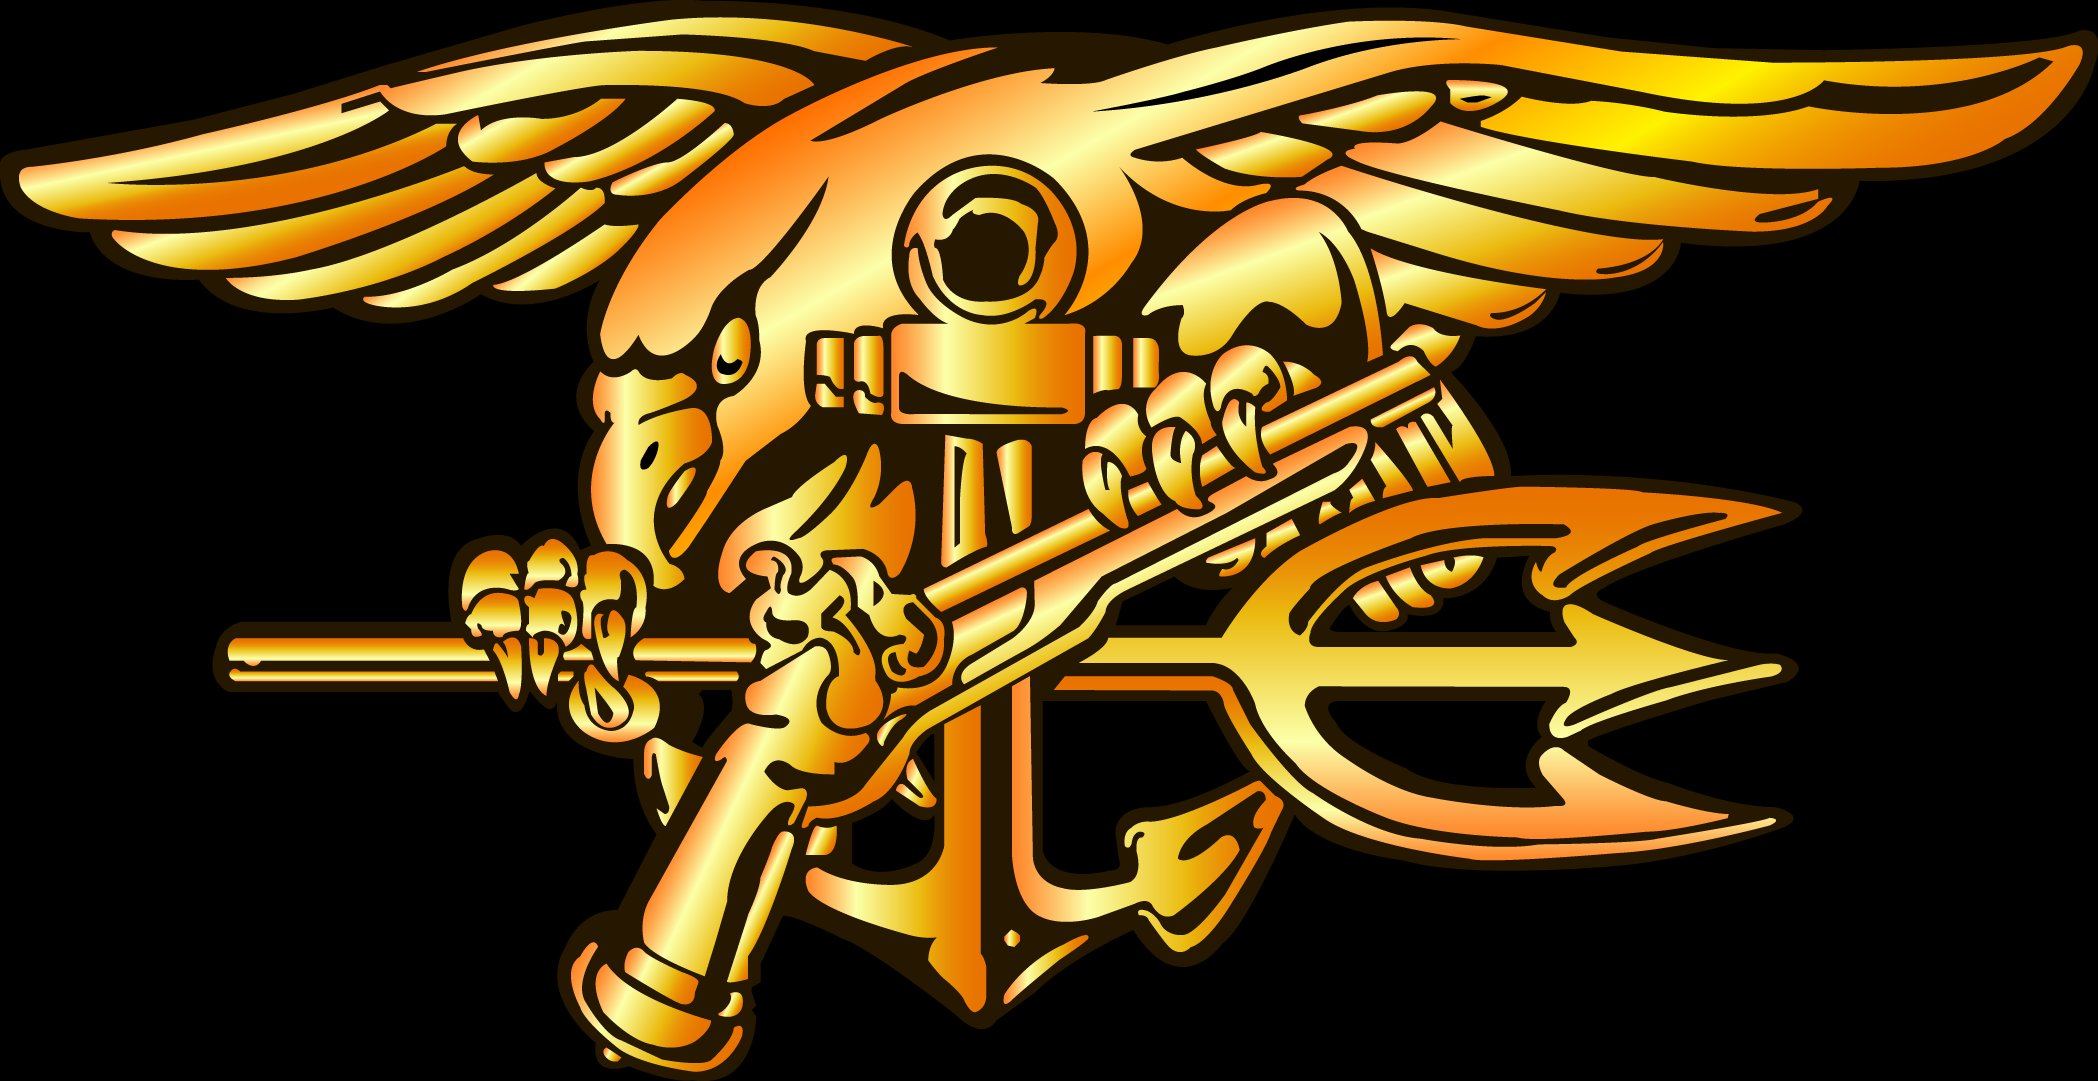 navy seal wallpaper iphone